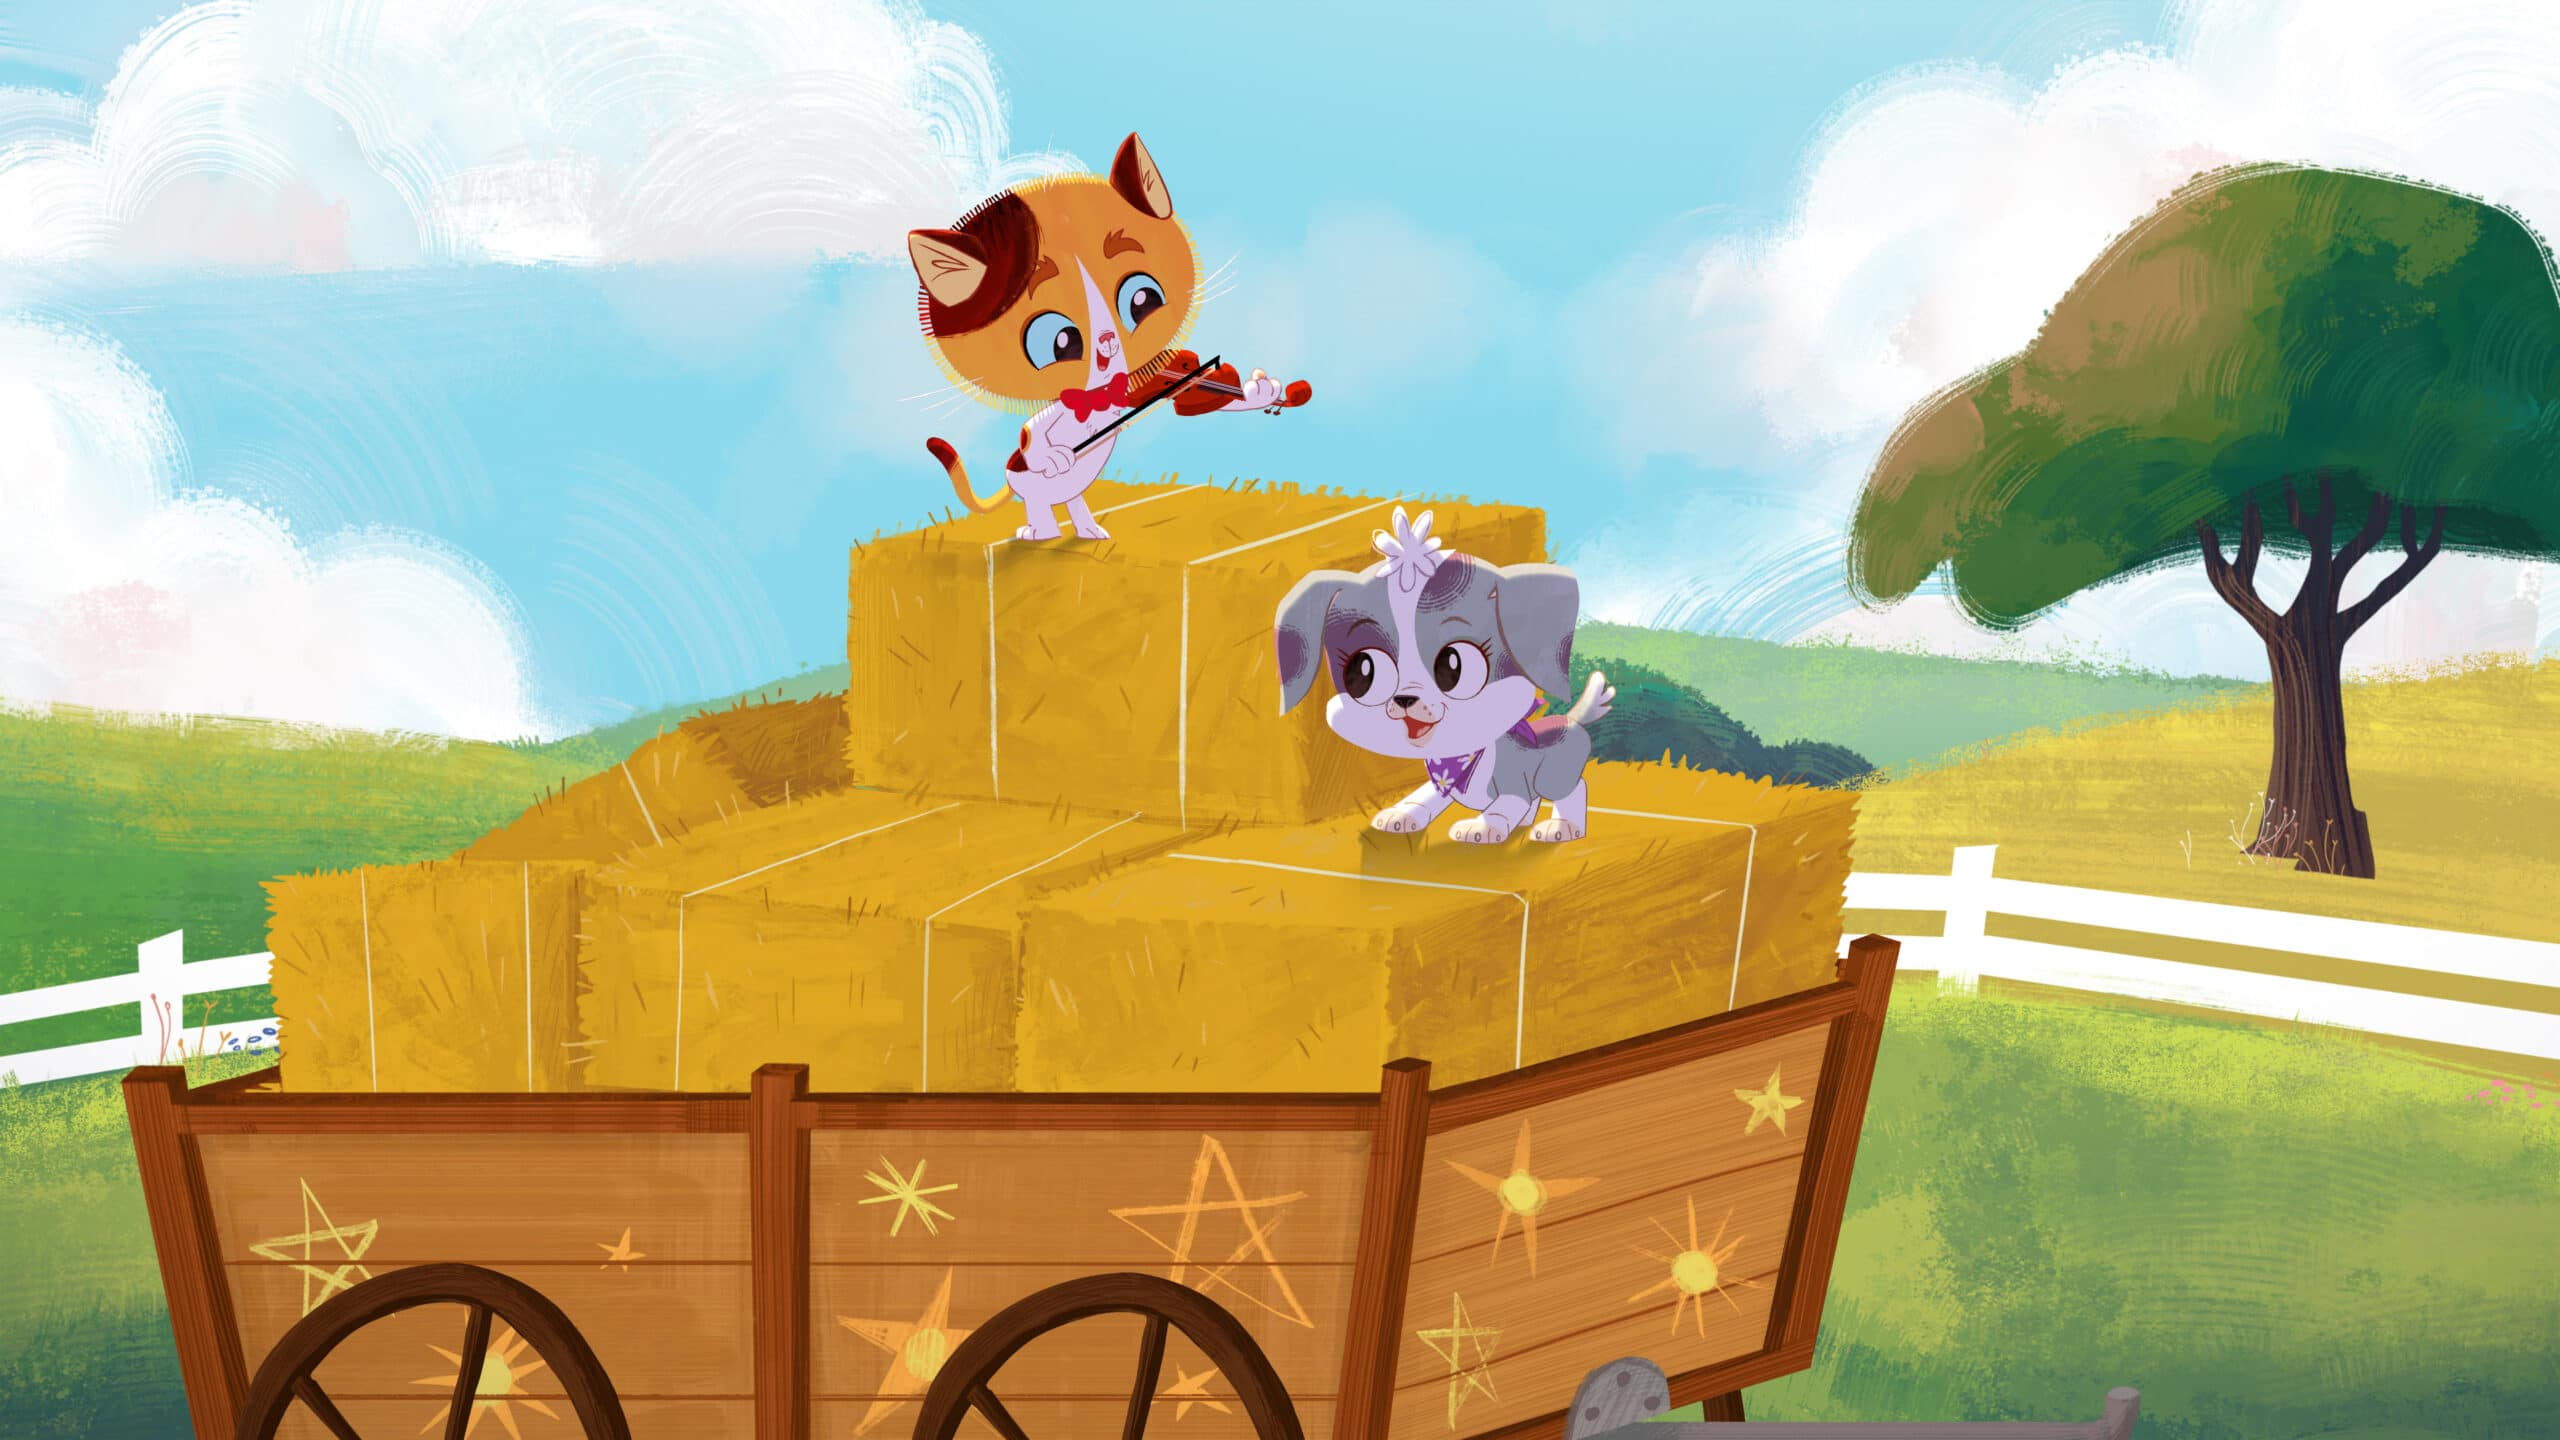 RHyme Time Town Cole, Daisy. Discover more about your favorite characters from the colorful world of Rhyme Time Town. Join Daisy and Cole in 10 all-new singing adventures through the Rhyme Time Town Sing Along,coming to Netflix on December 22nd!